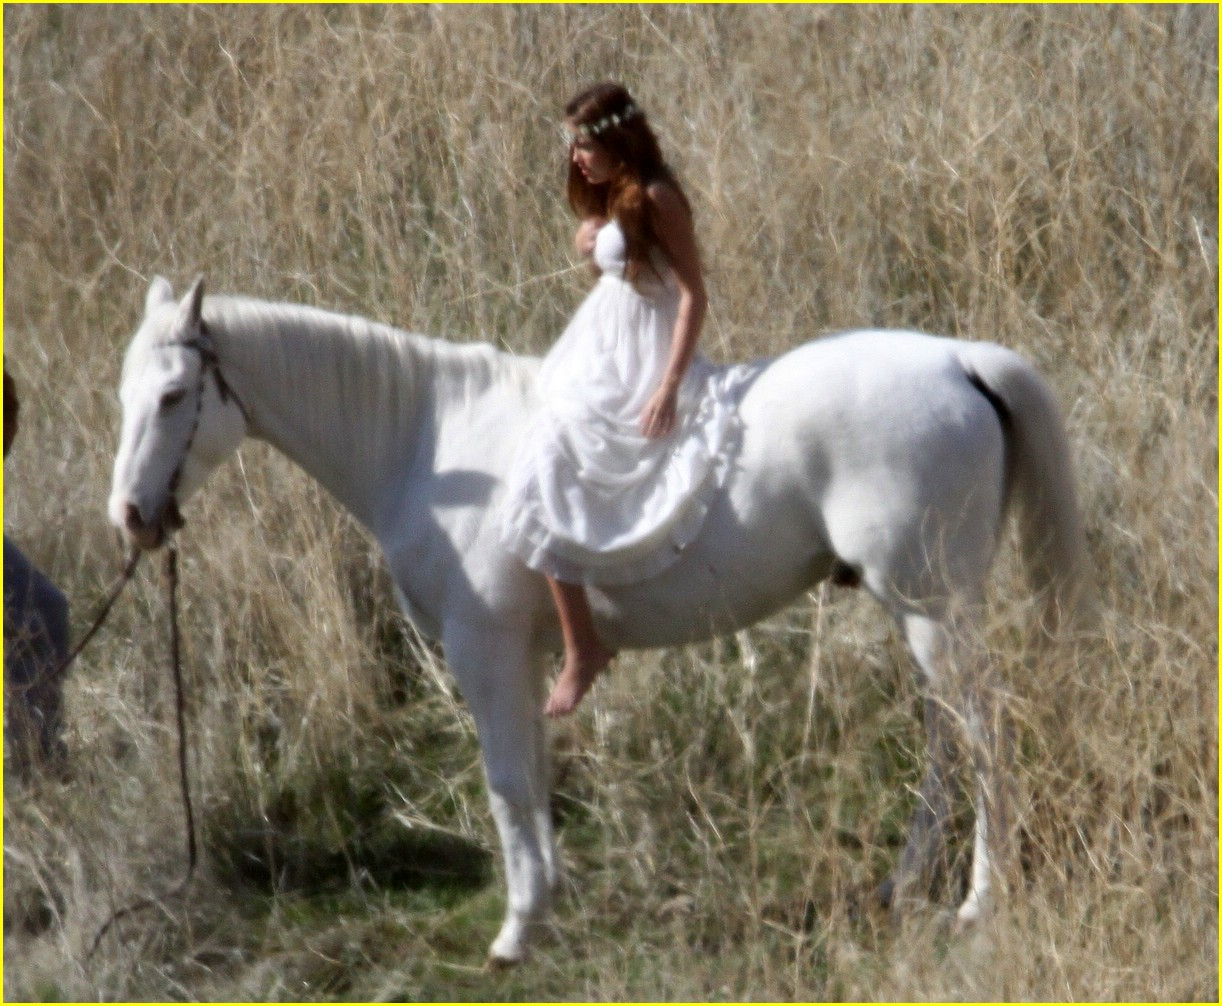 http://4.bp.blogspot.com/-UoJAtzLSQPo/TnbVGh3_uWI/AAAAAAAAA9I/4d10It1hkeY/s1600/White+horse+wallpapers+%25286%2529.jpg